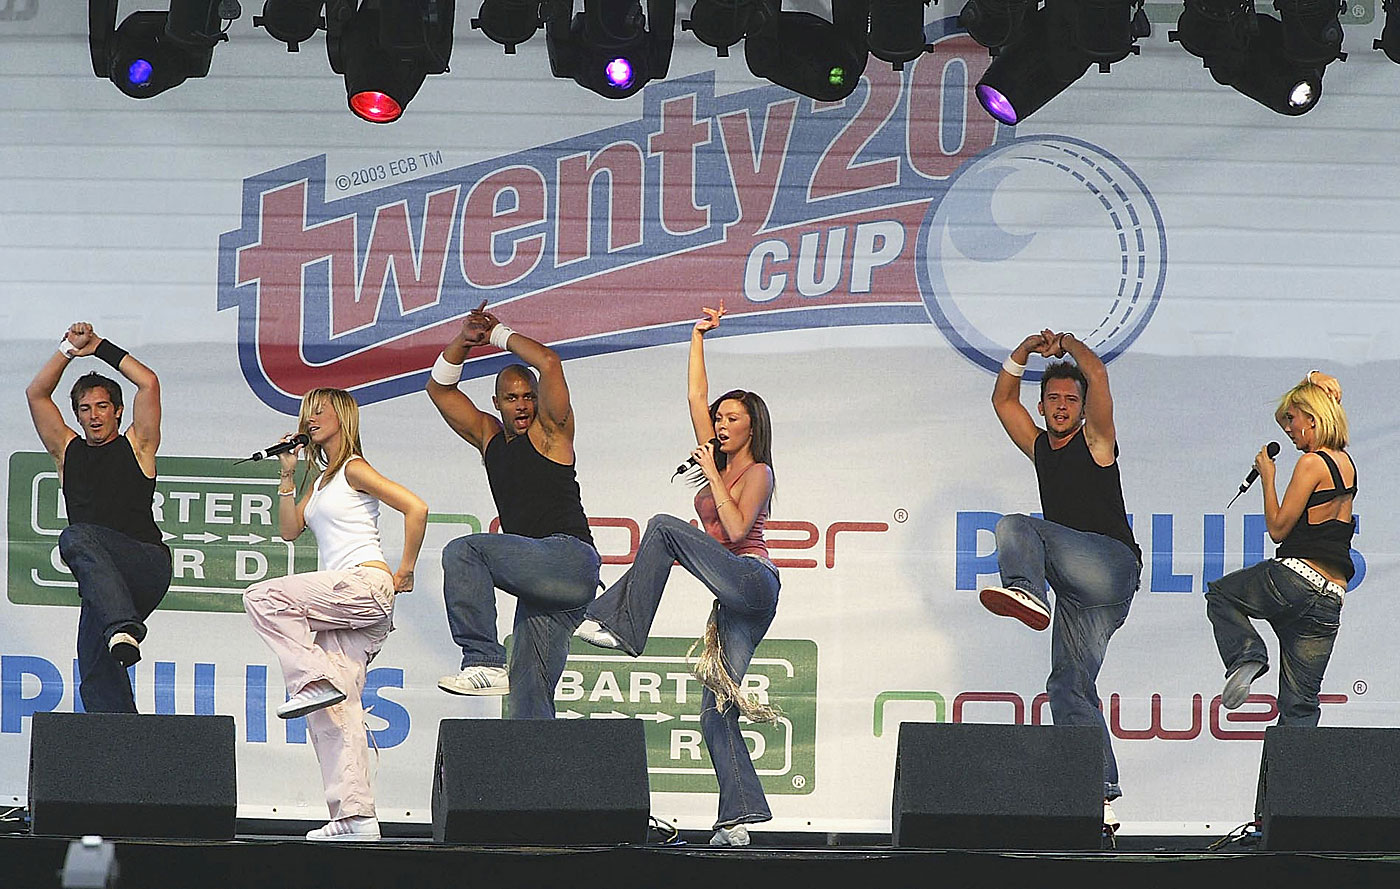 Talkin' about a revolution: the T20 Cup in England was launched in 2003 to get more bums on seats. Not long after, other cricket boards cashed in on the format's potential